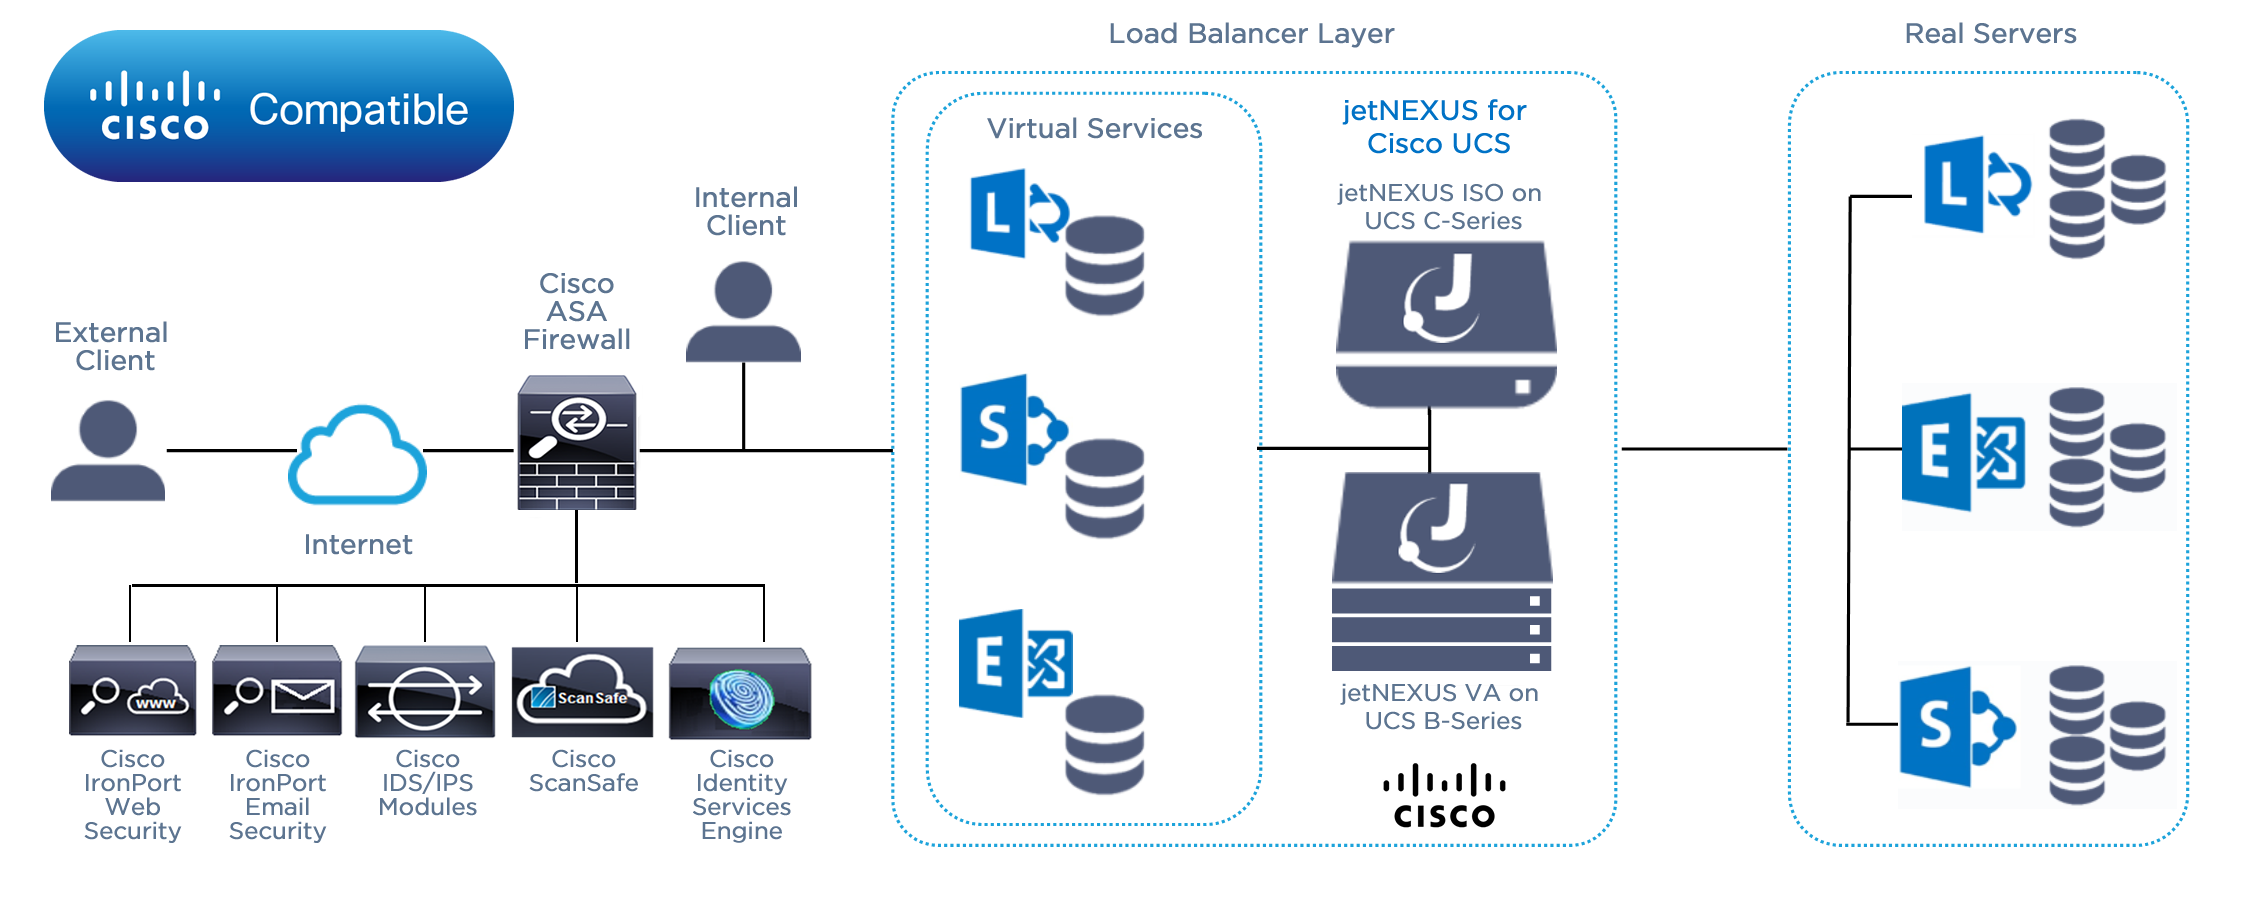 edgeNEXUS Deployment for Cisco UCS